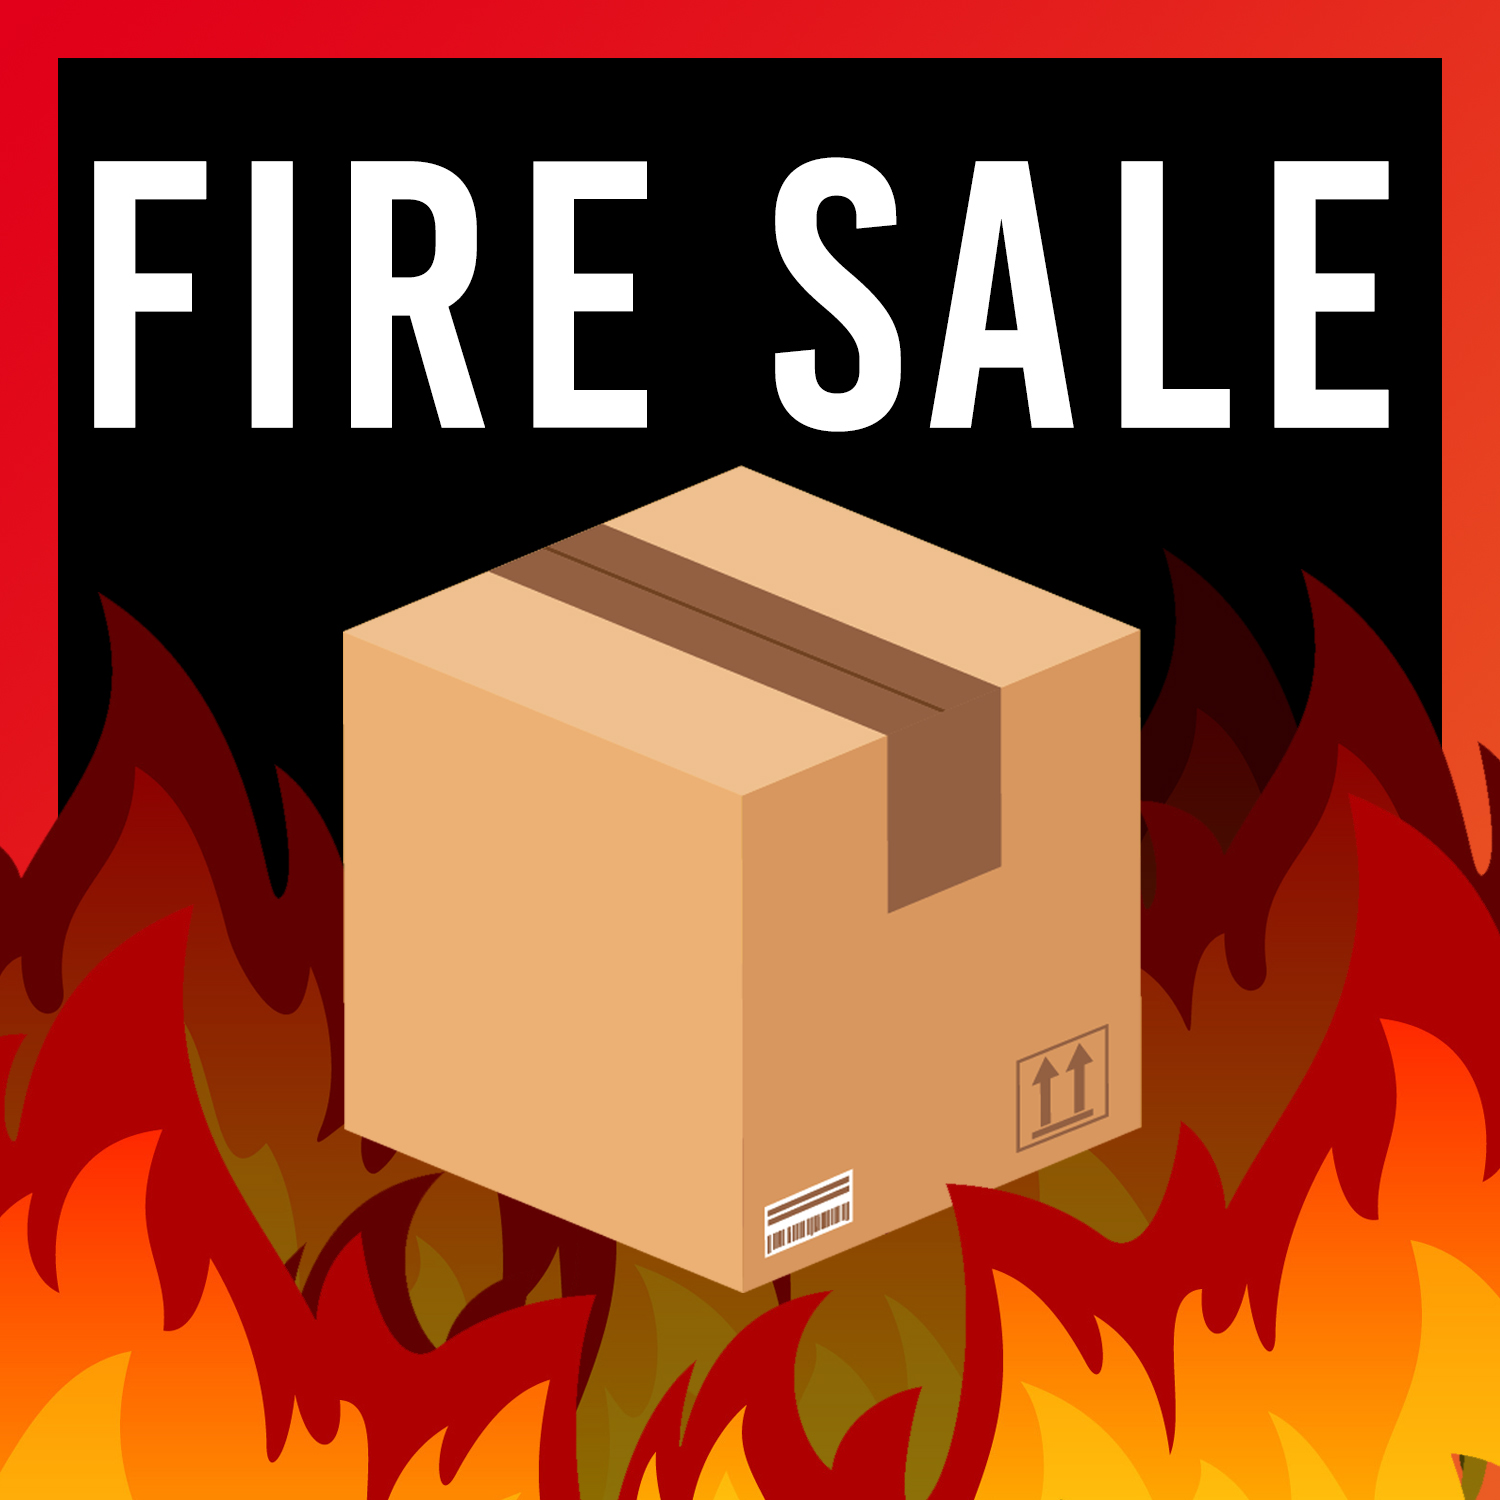 FIRE SALE PACK w/ FREE Drawstring Bag - 180mL FOR AS LOW AS $14.95! Photo